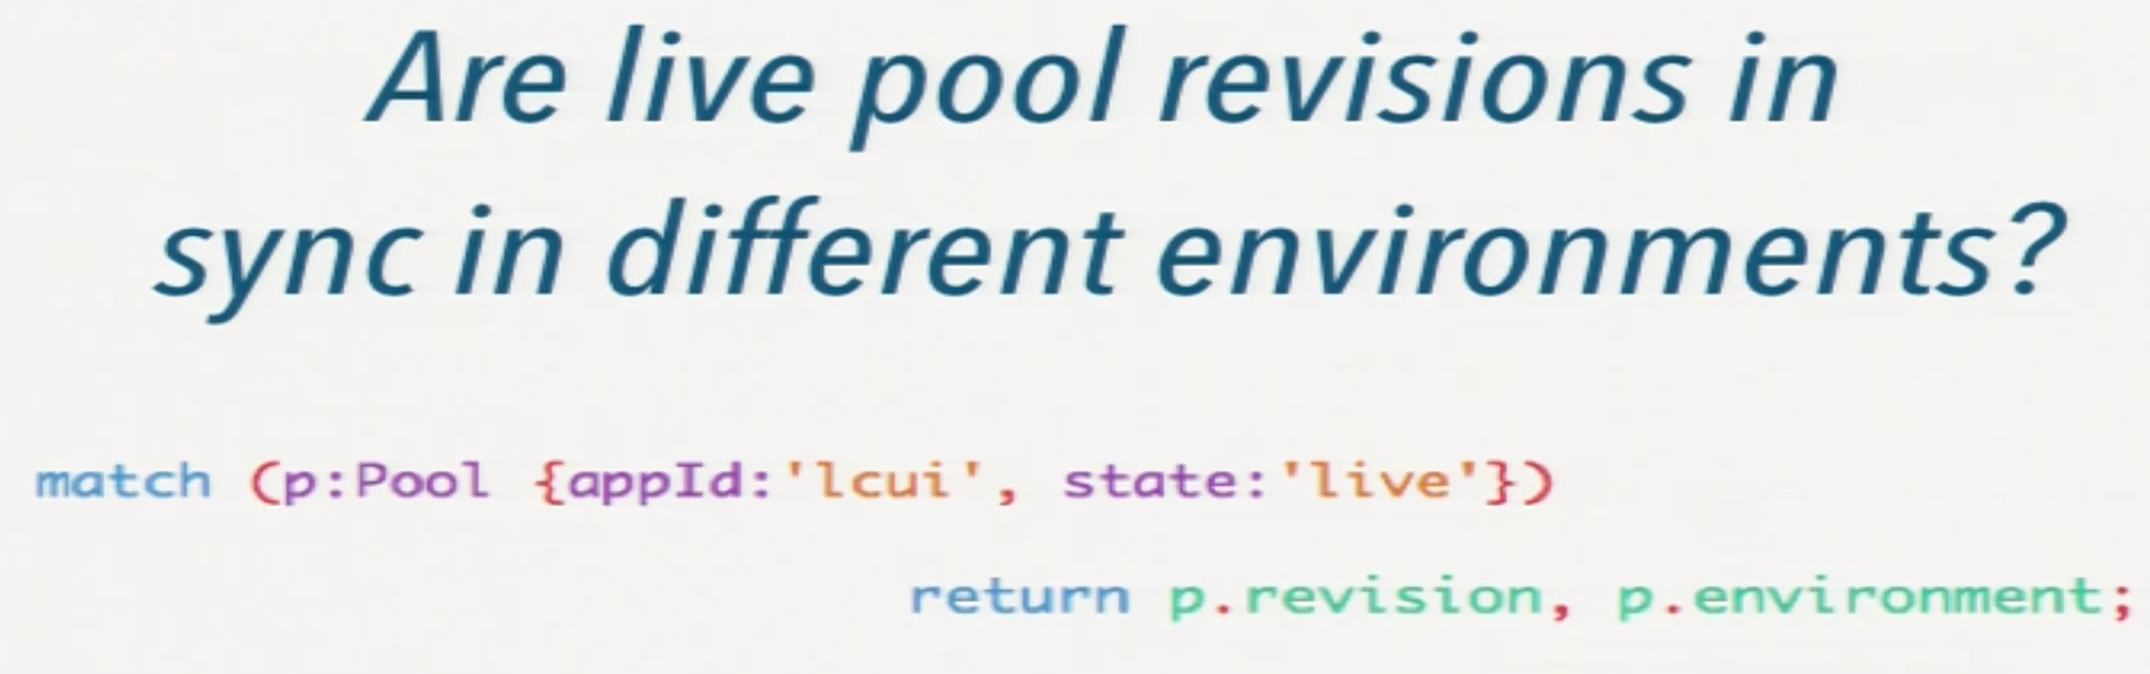 a cypher query to determine if live pool revisions are in sync